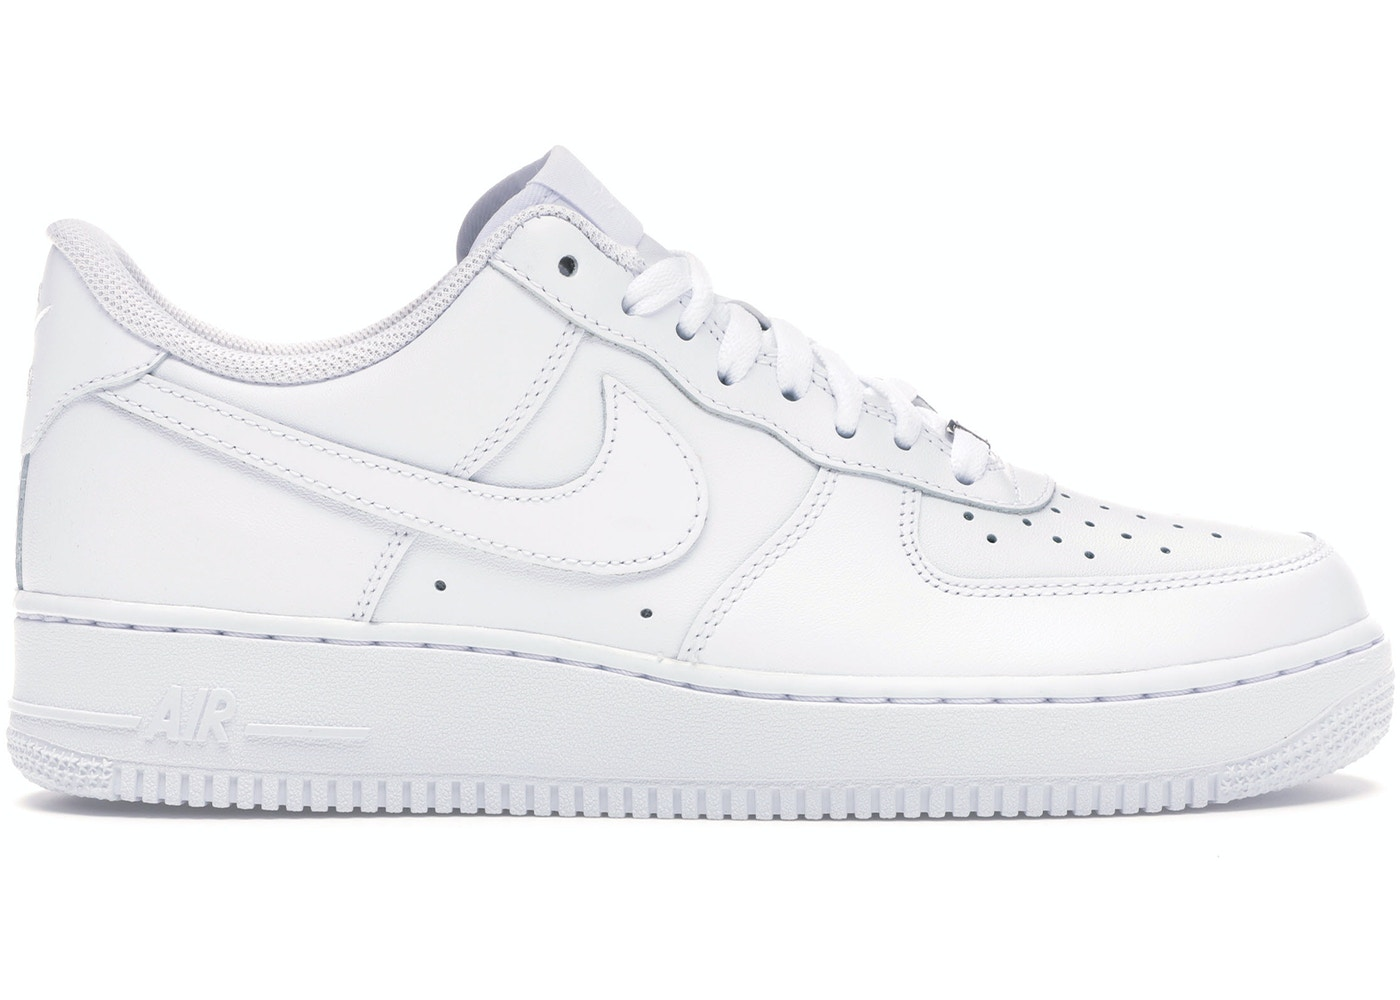 Nike Air Force 1 Low White 07 315122 111 Cw2288 111